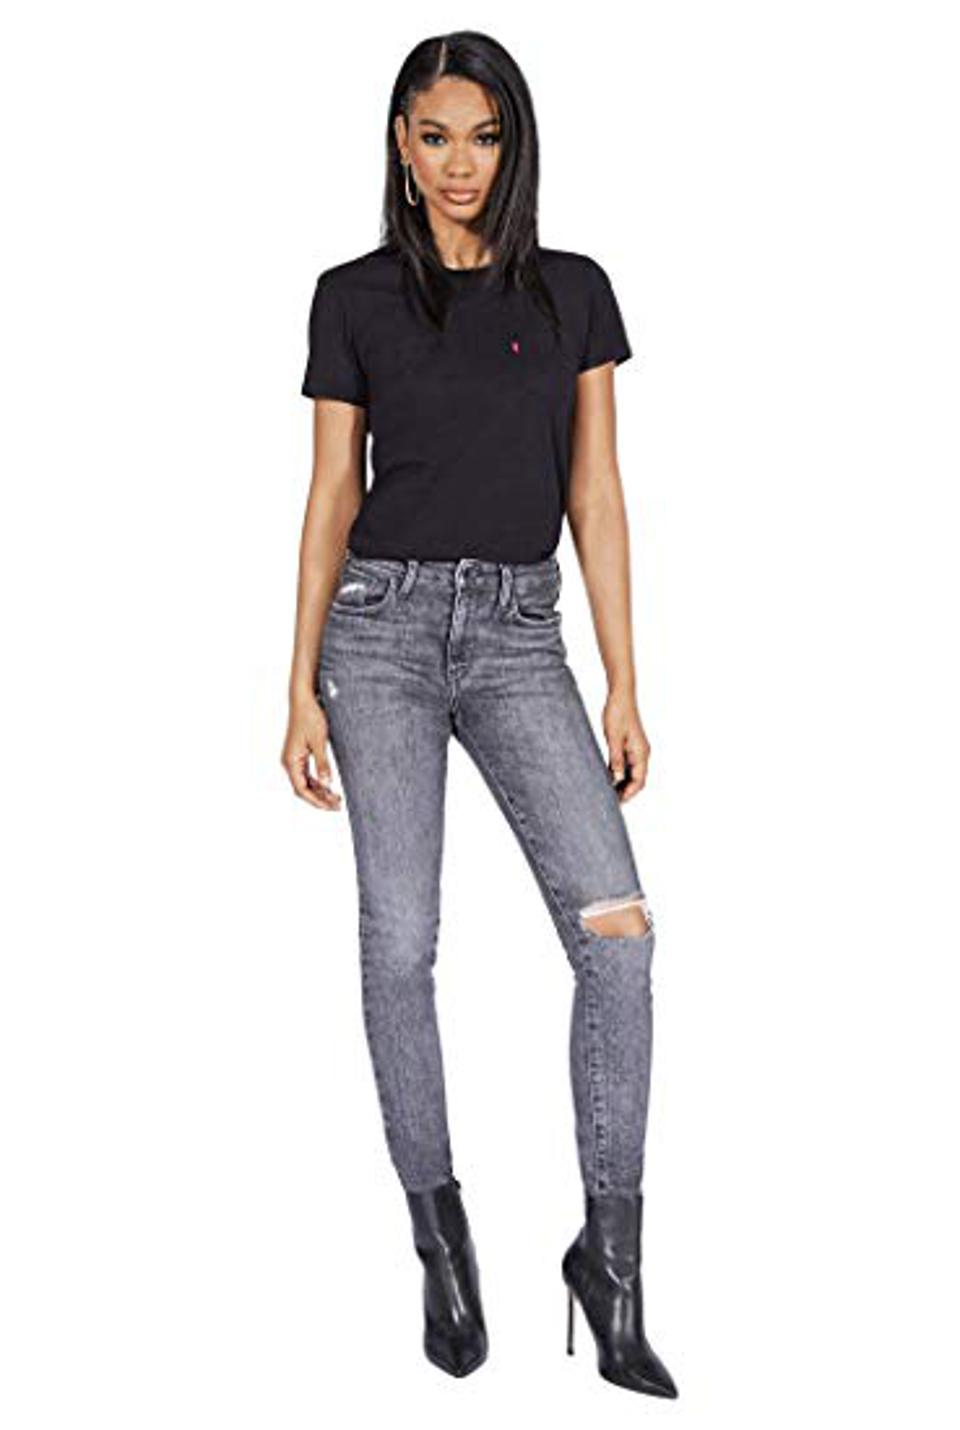 Levi's Women's 721 High-Rise Jeans Customized By Chanel Imam Shepard